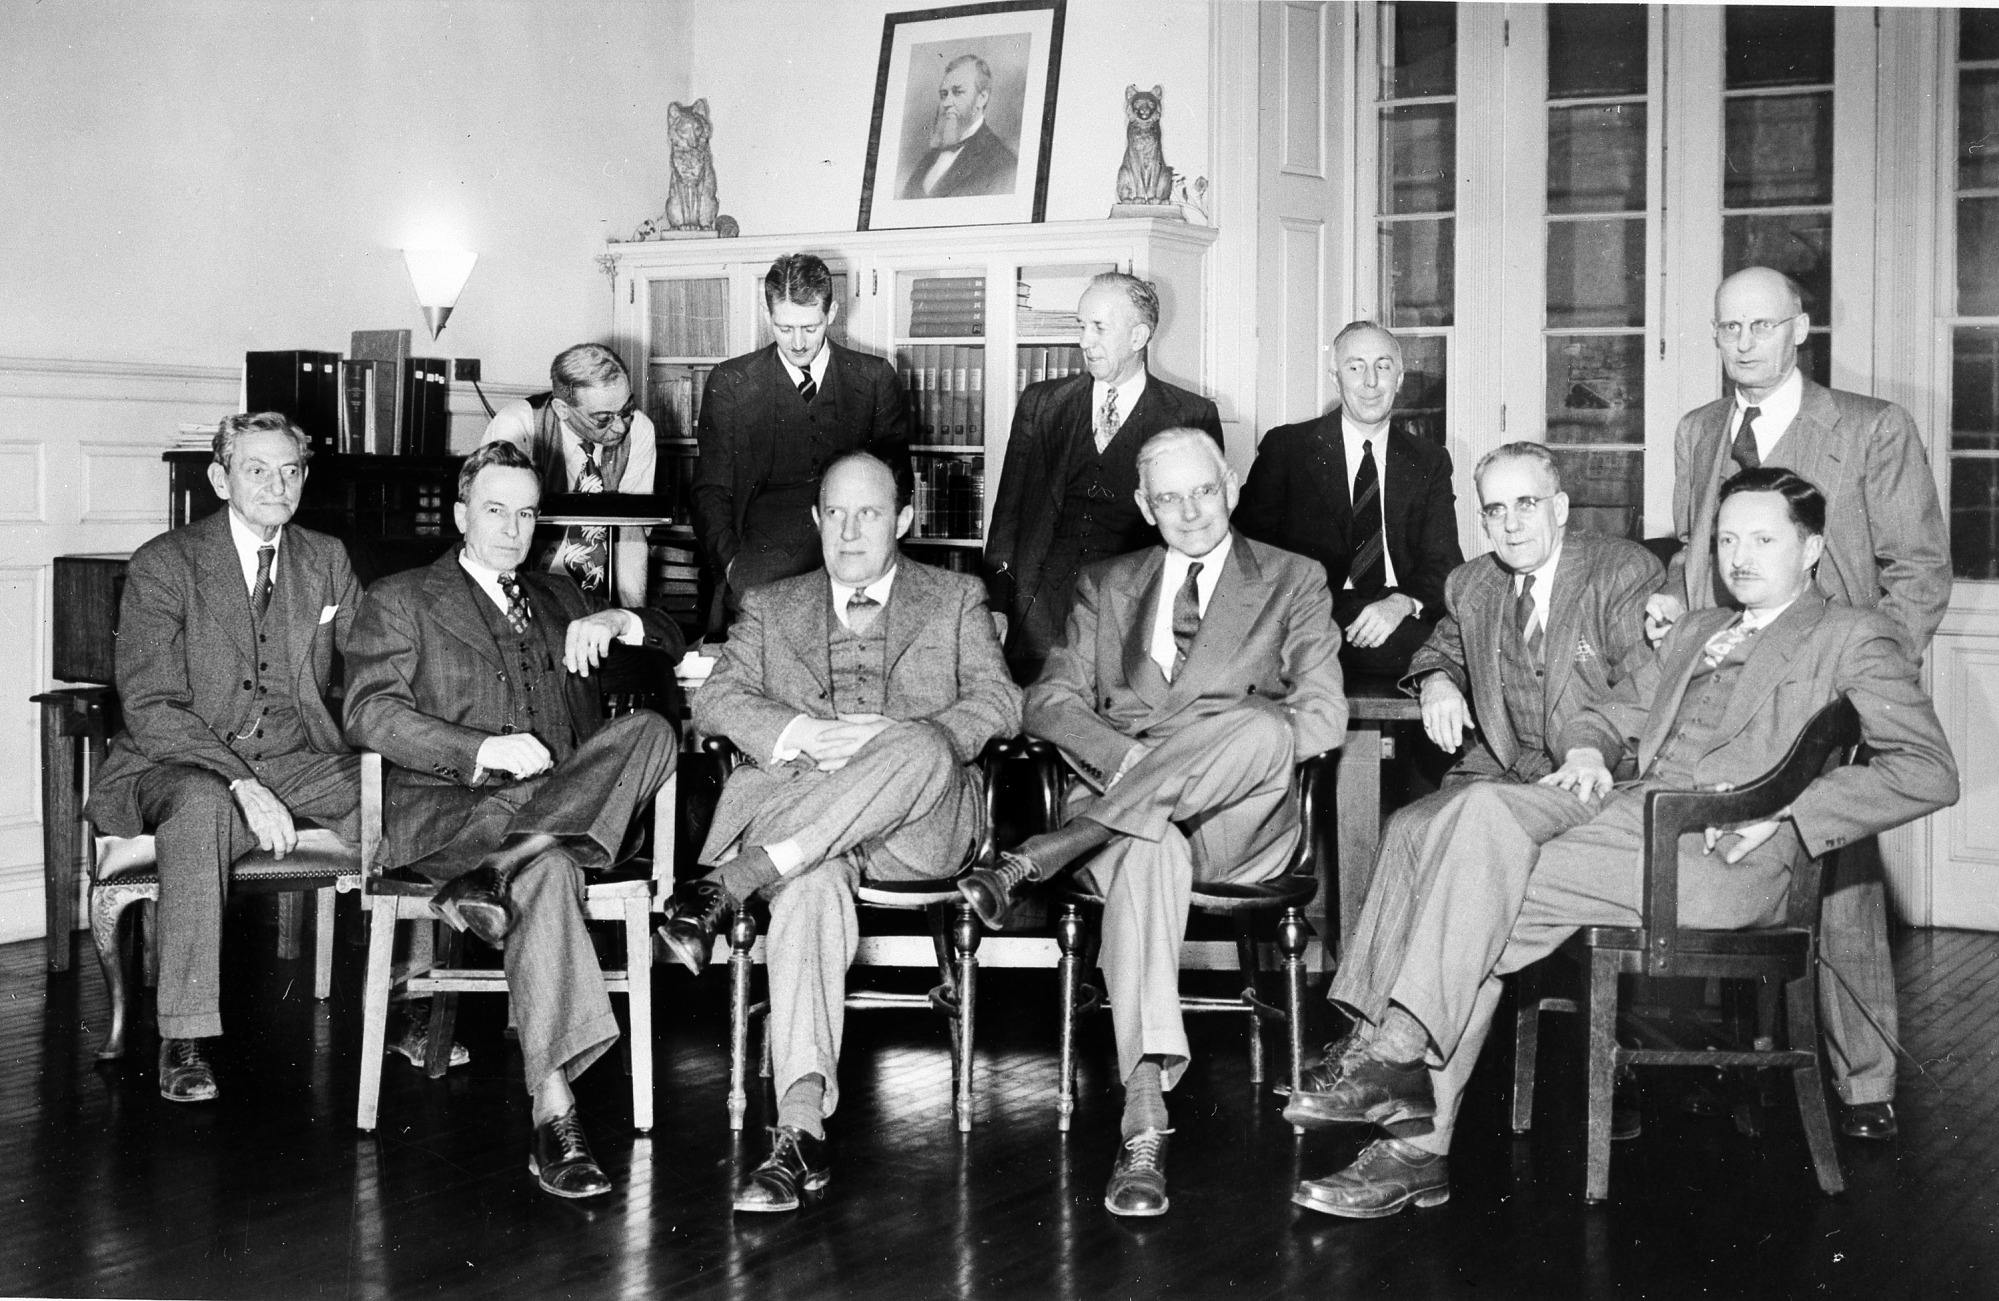 108th Meeting of the Baird Ornithological Club